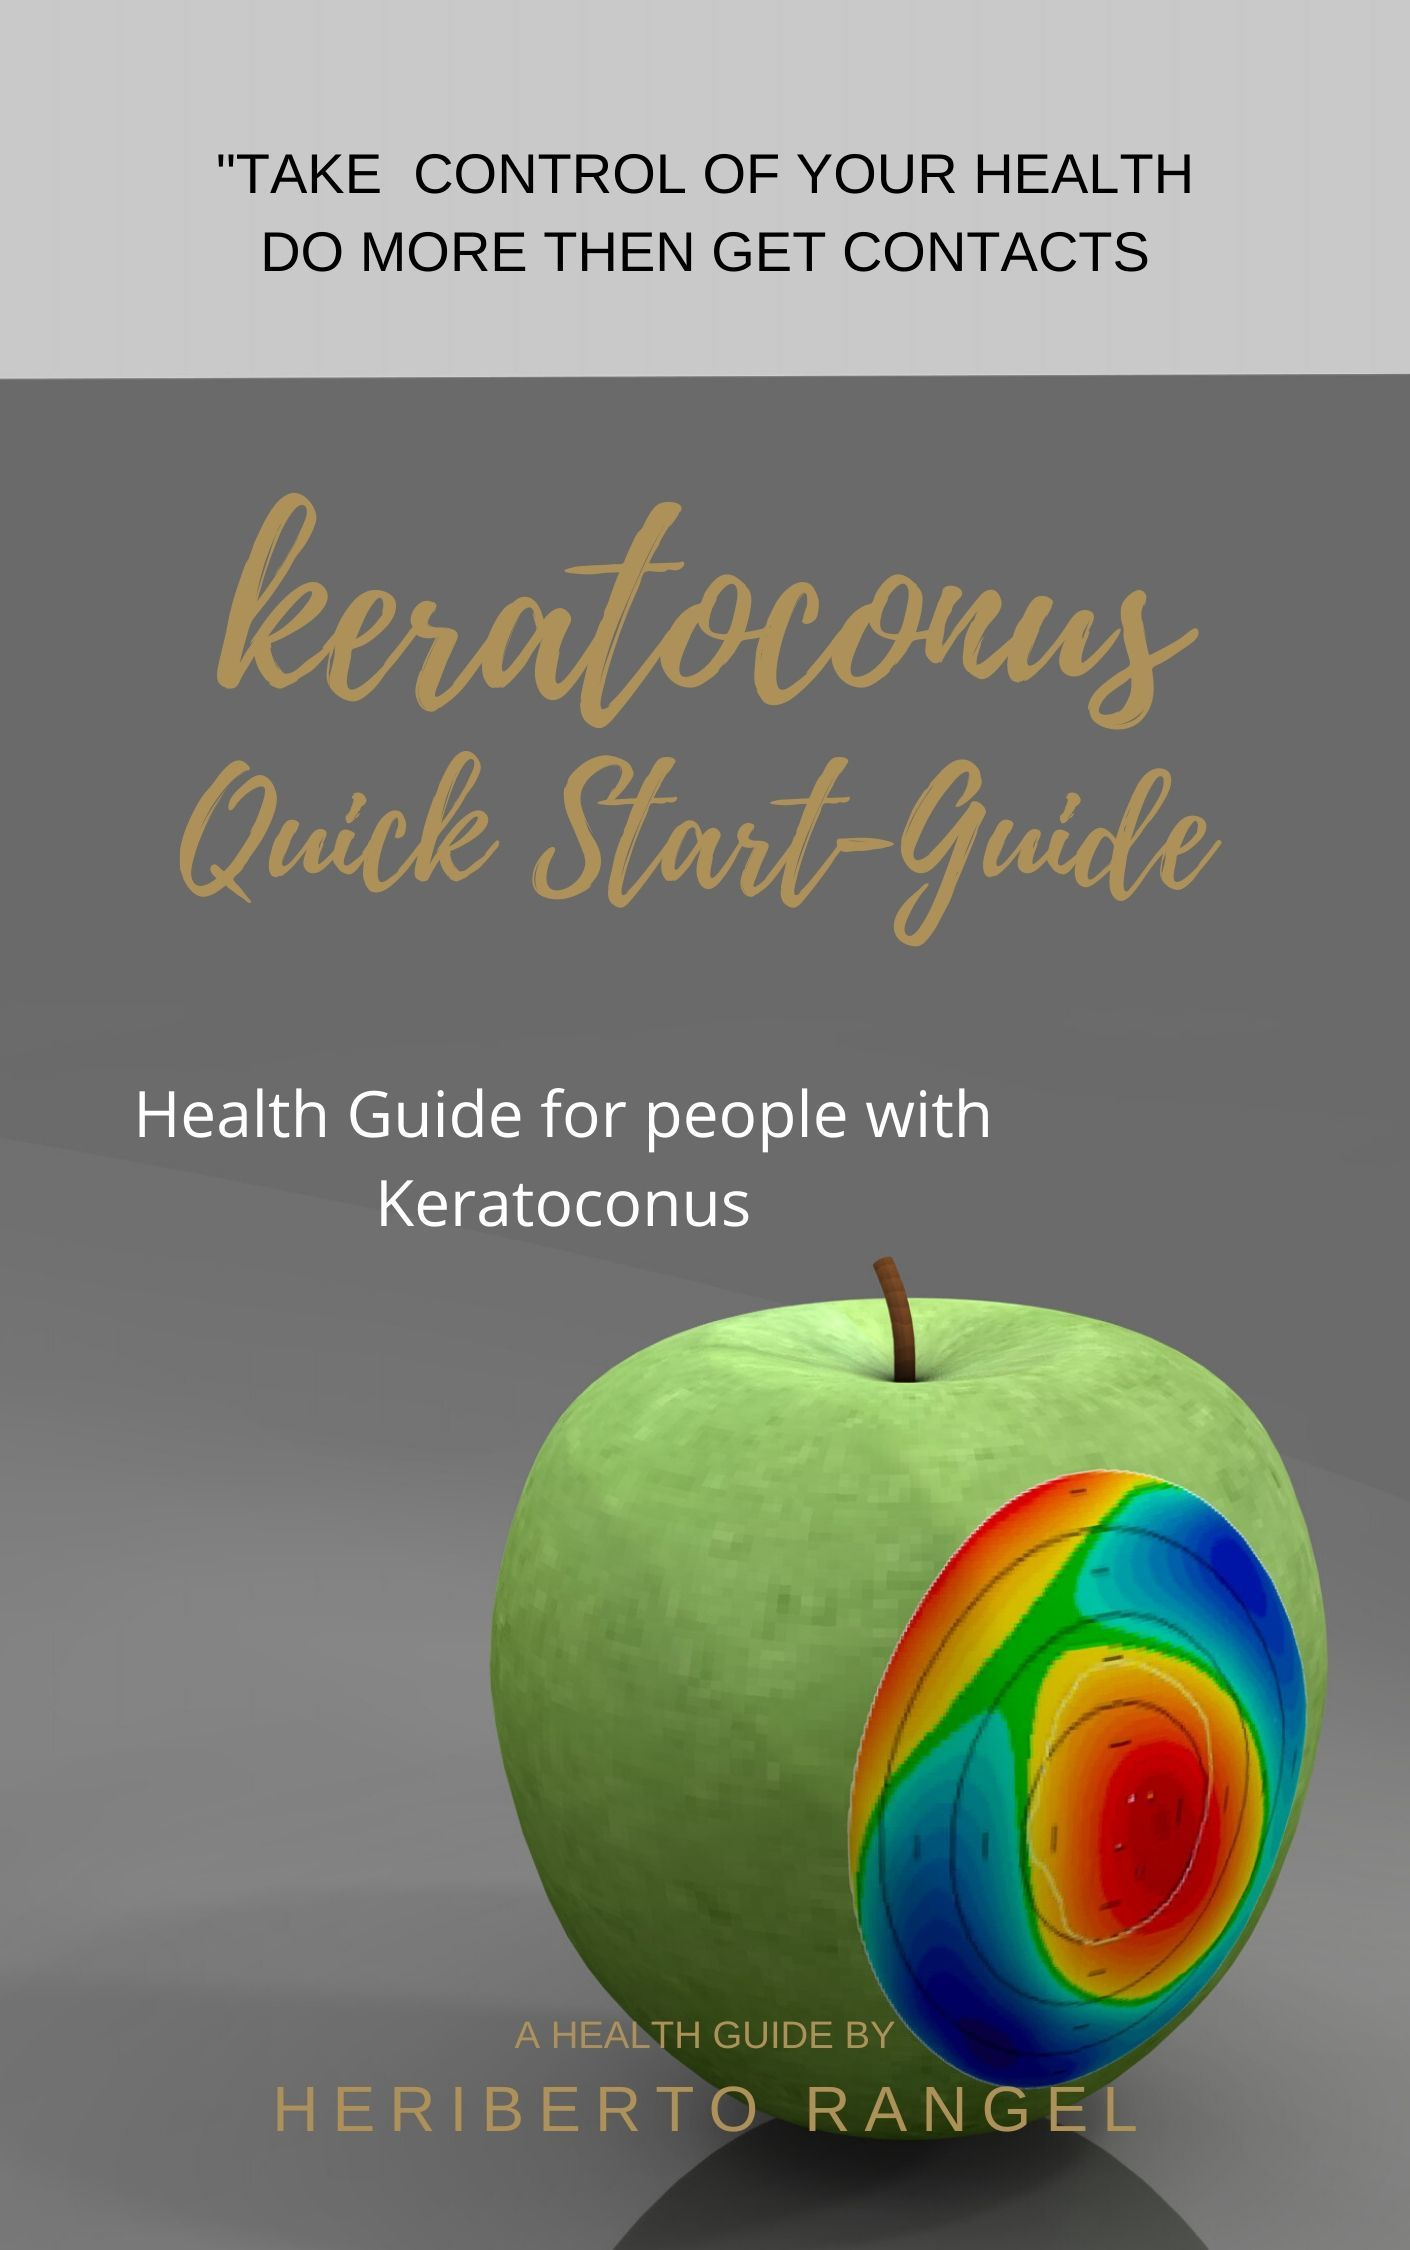 Get the keratoconus QuickStart guide in 9 pages pdf or